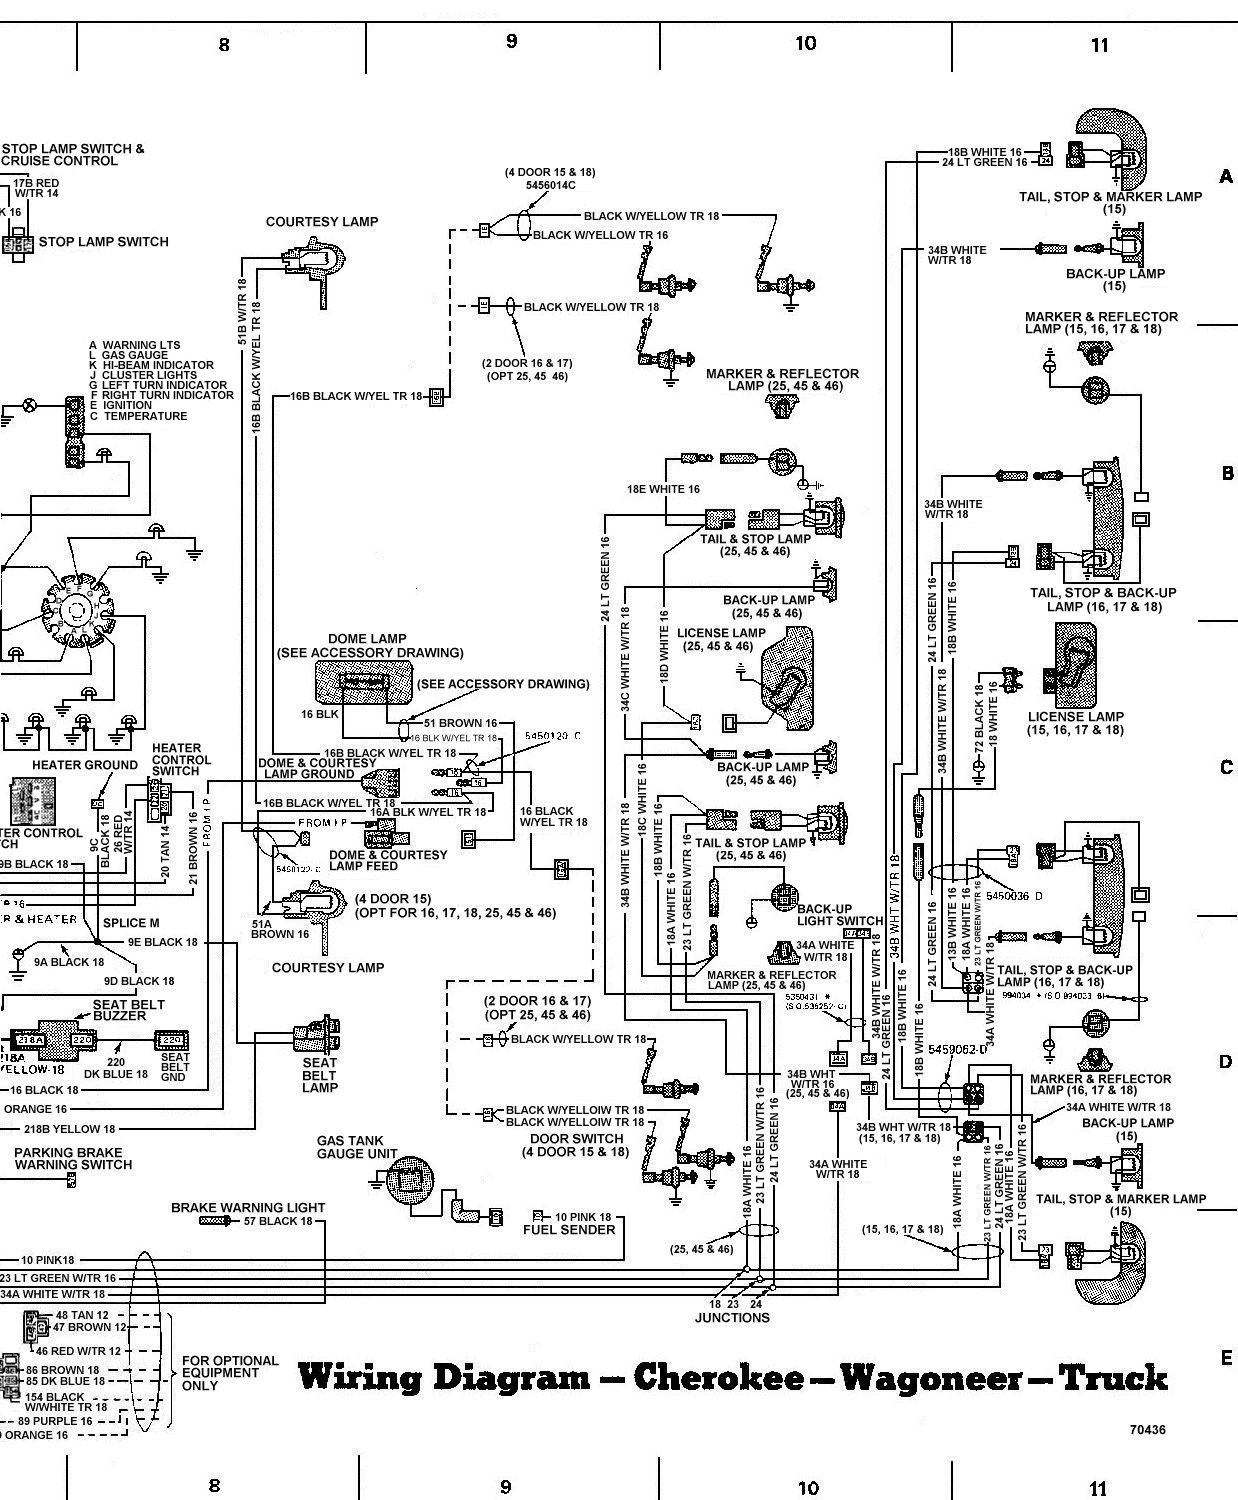 hight resolution of 1987 jeep cherokee wiring diagram schematic wiring diagrams rh 13 koch foerderbandtrommeln de 1996 jeep grand cherokee starter 2001 jeep grand cherokee